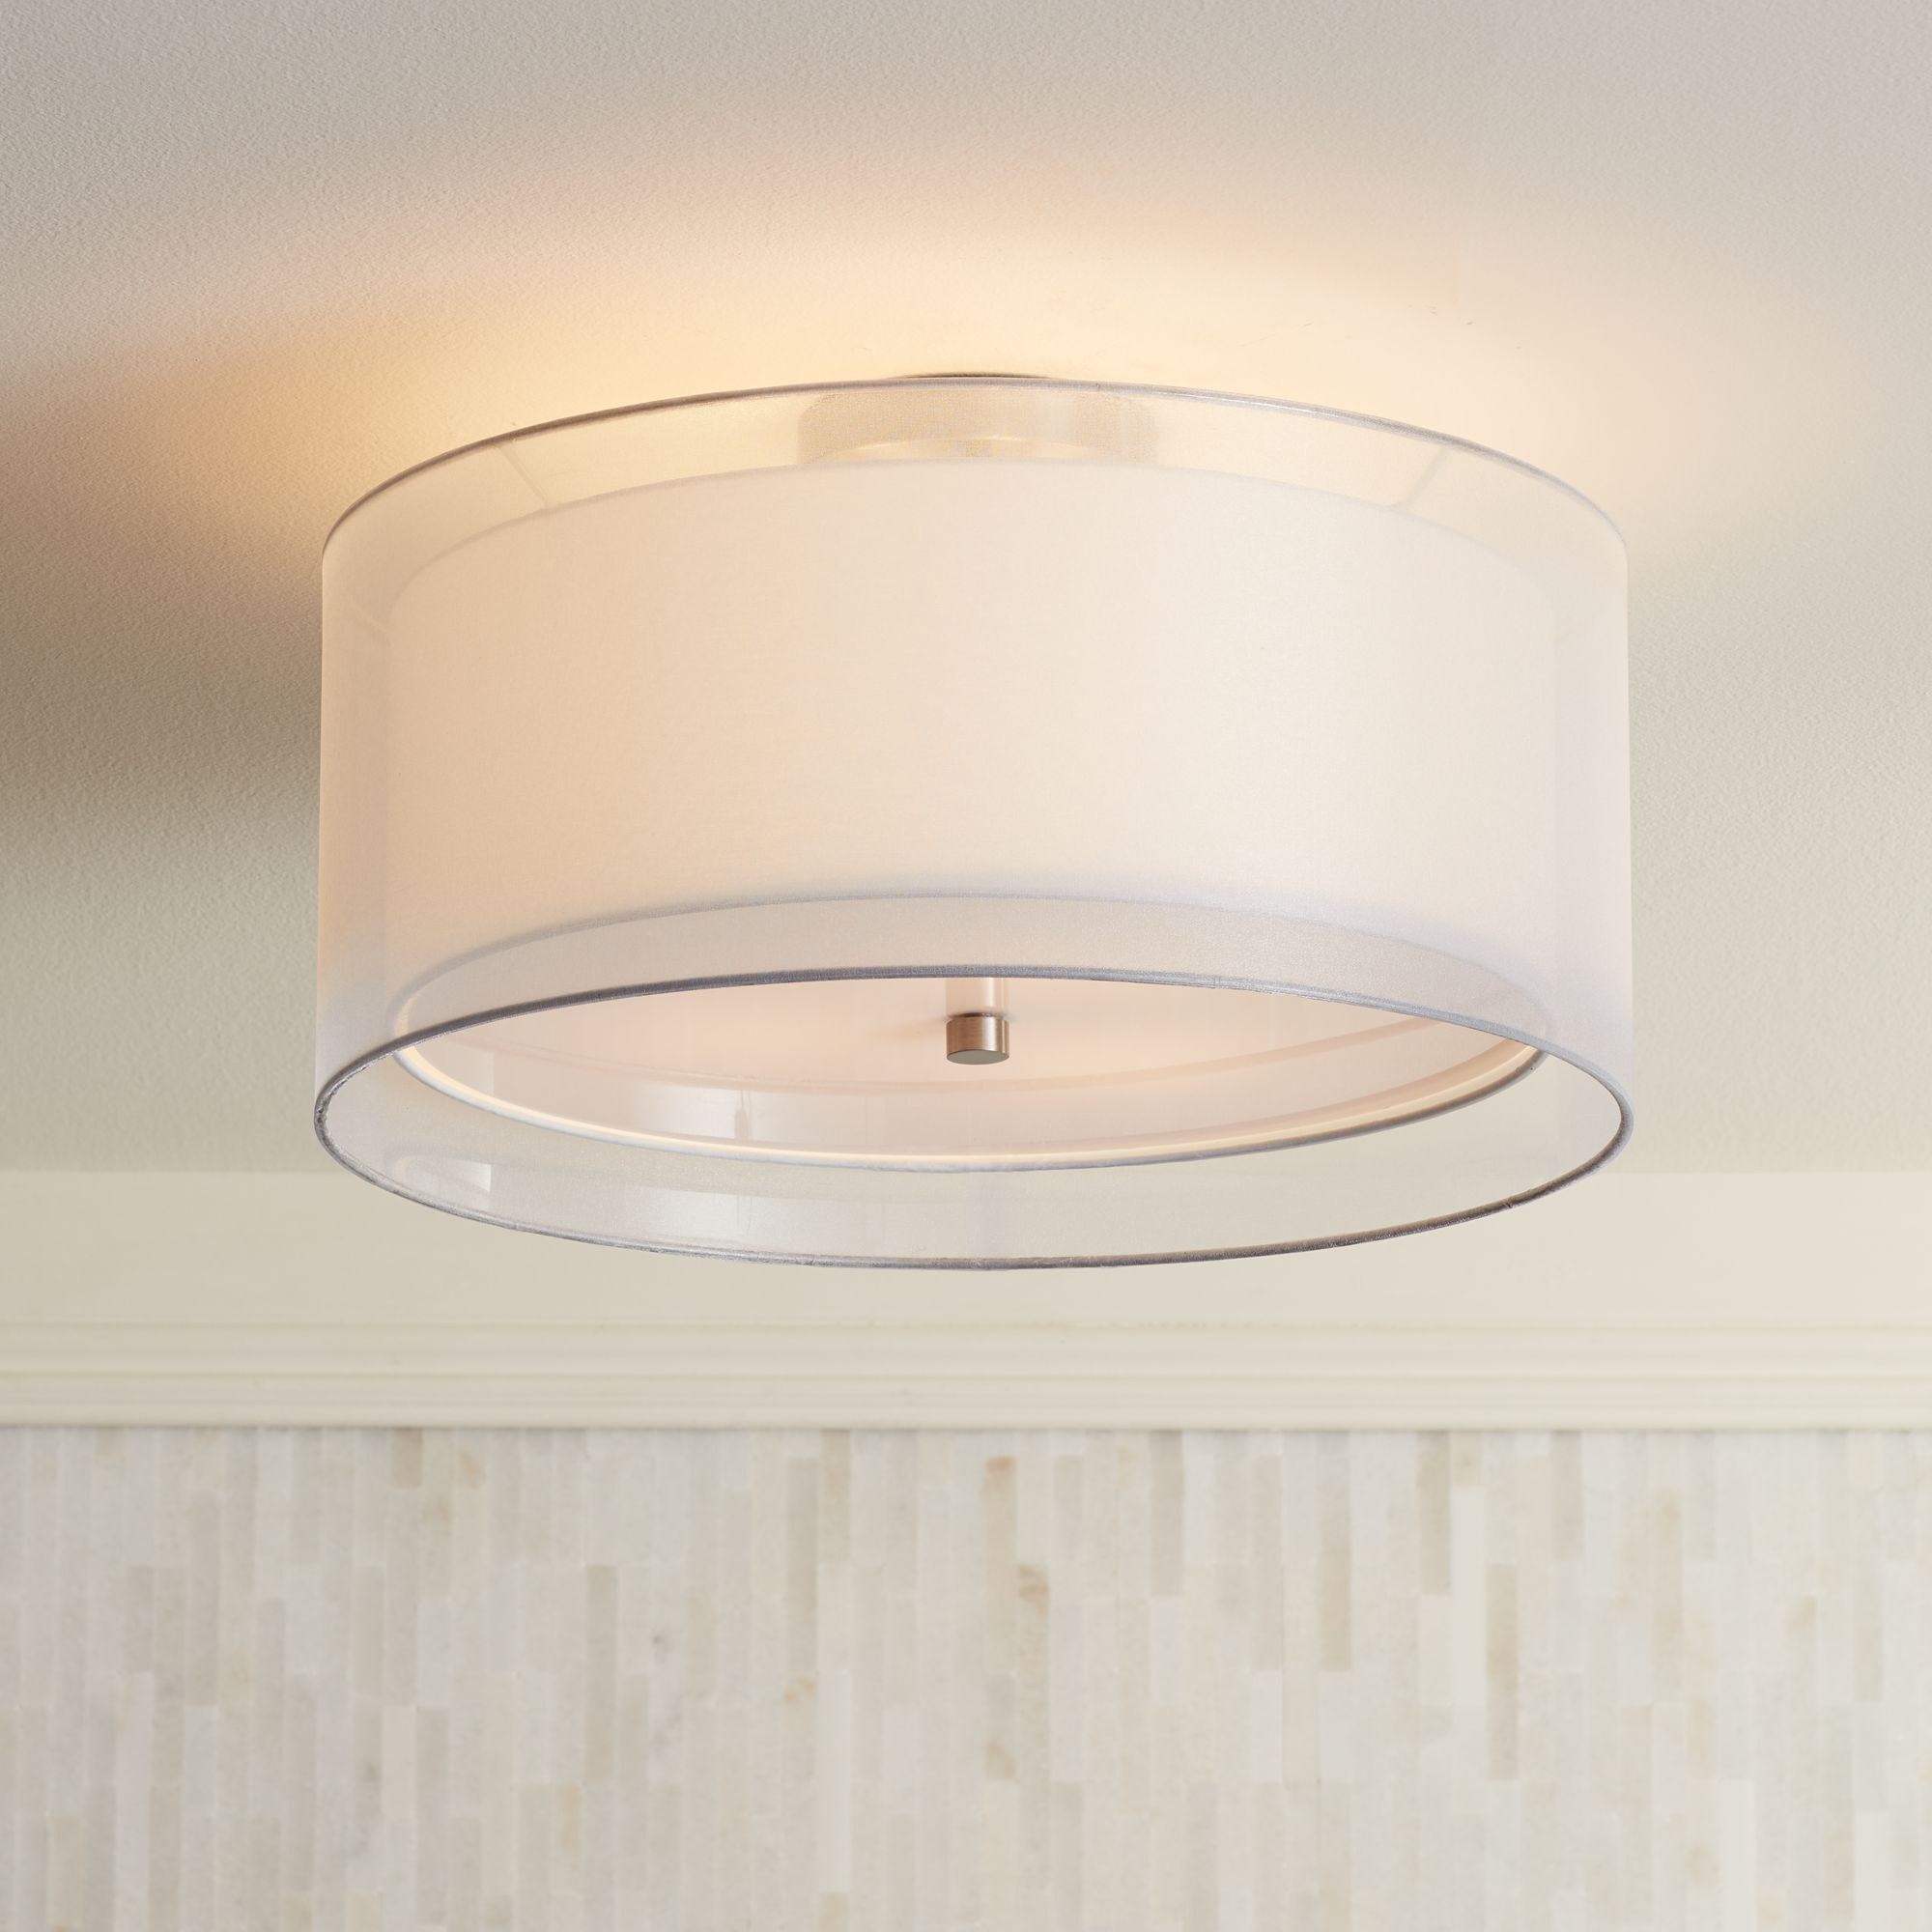 Possini Euro Design Double Drum 18 Wide White Ceiling Light P0197